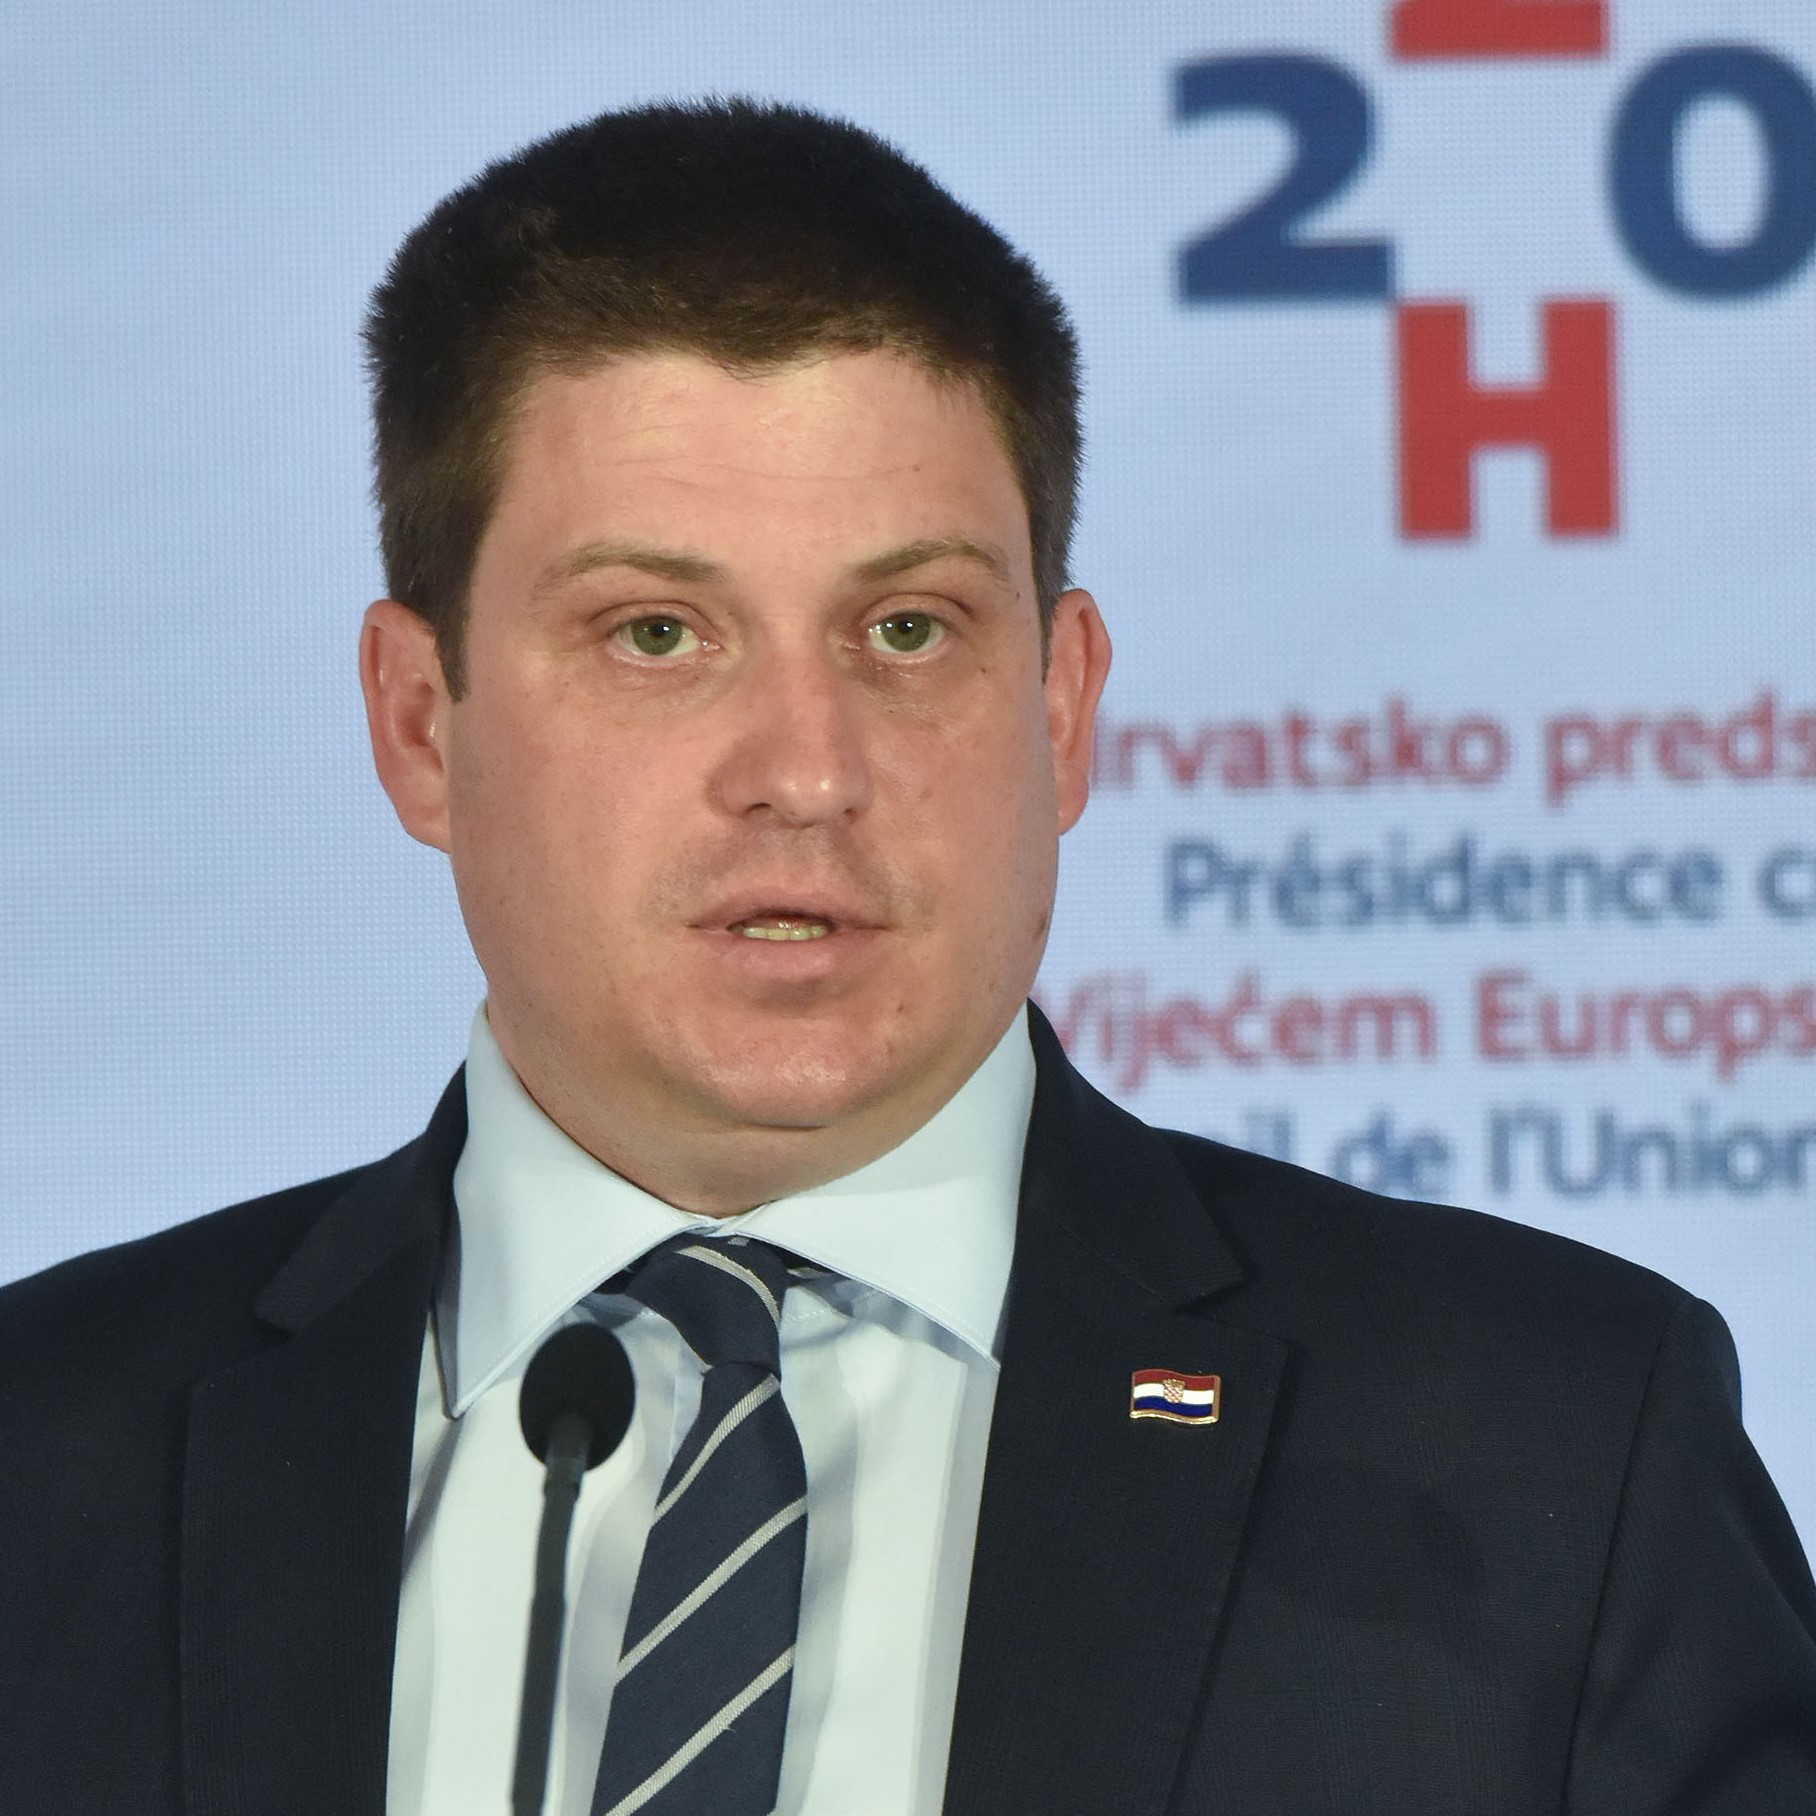 Oleg Butković, Croatian Minister for the Sea, Transport and Infrastructure, President of the Council